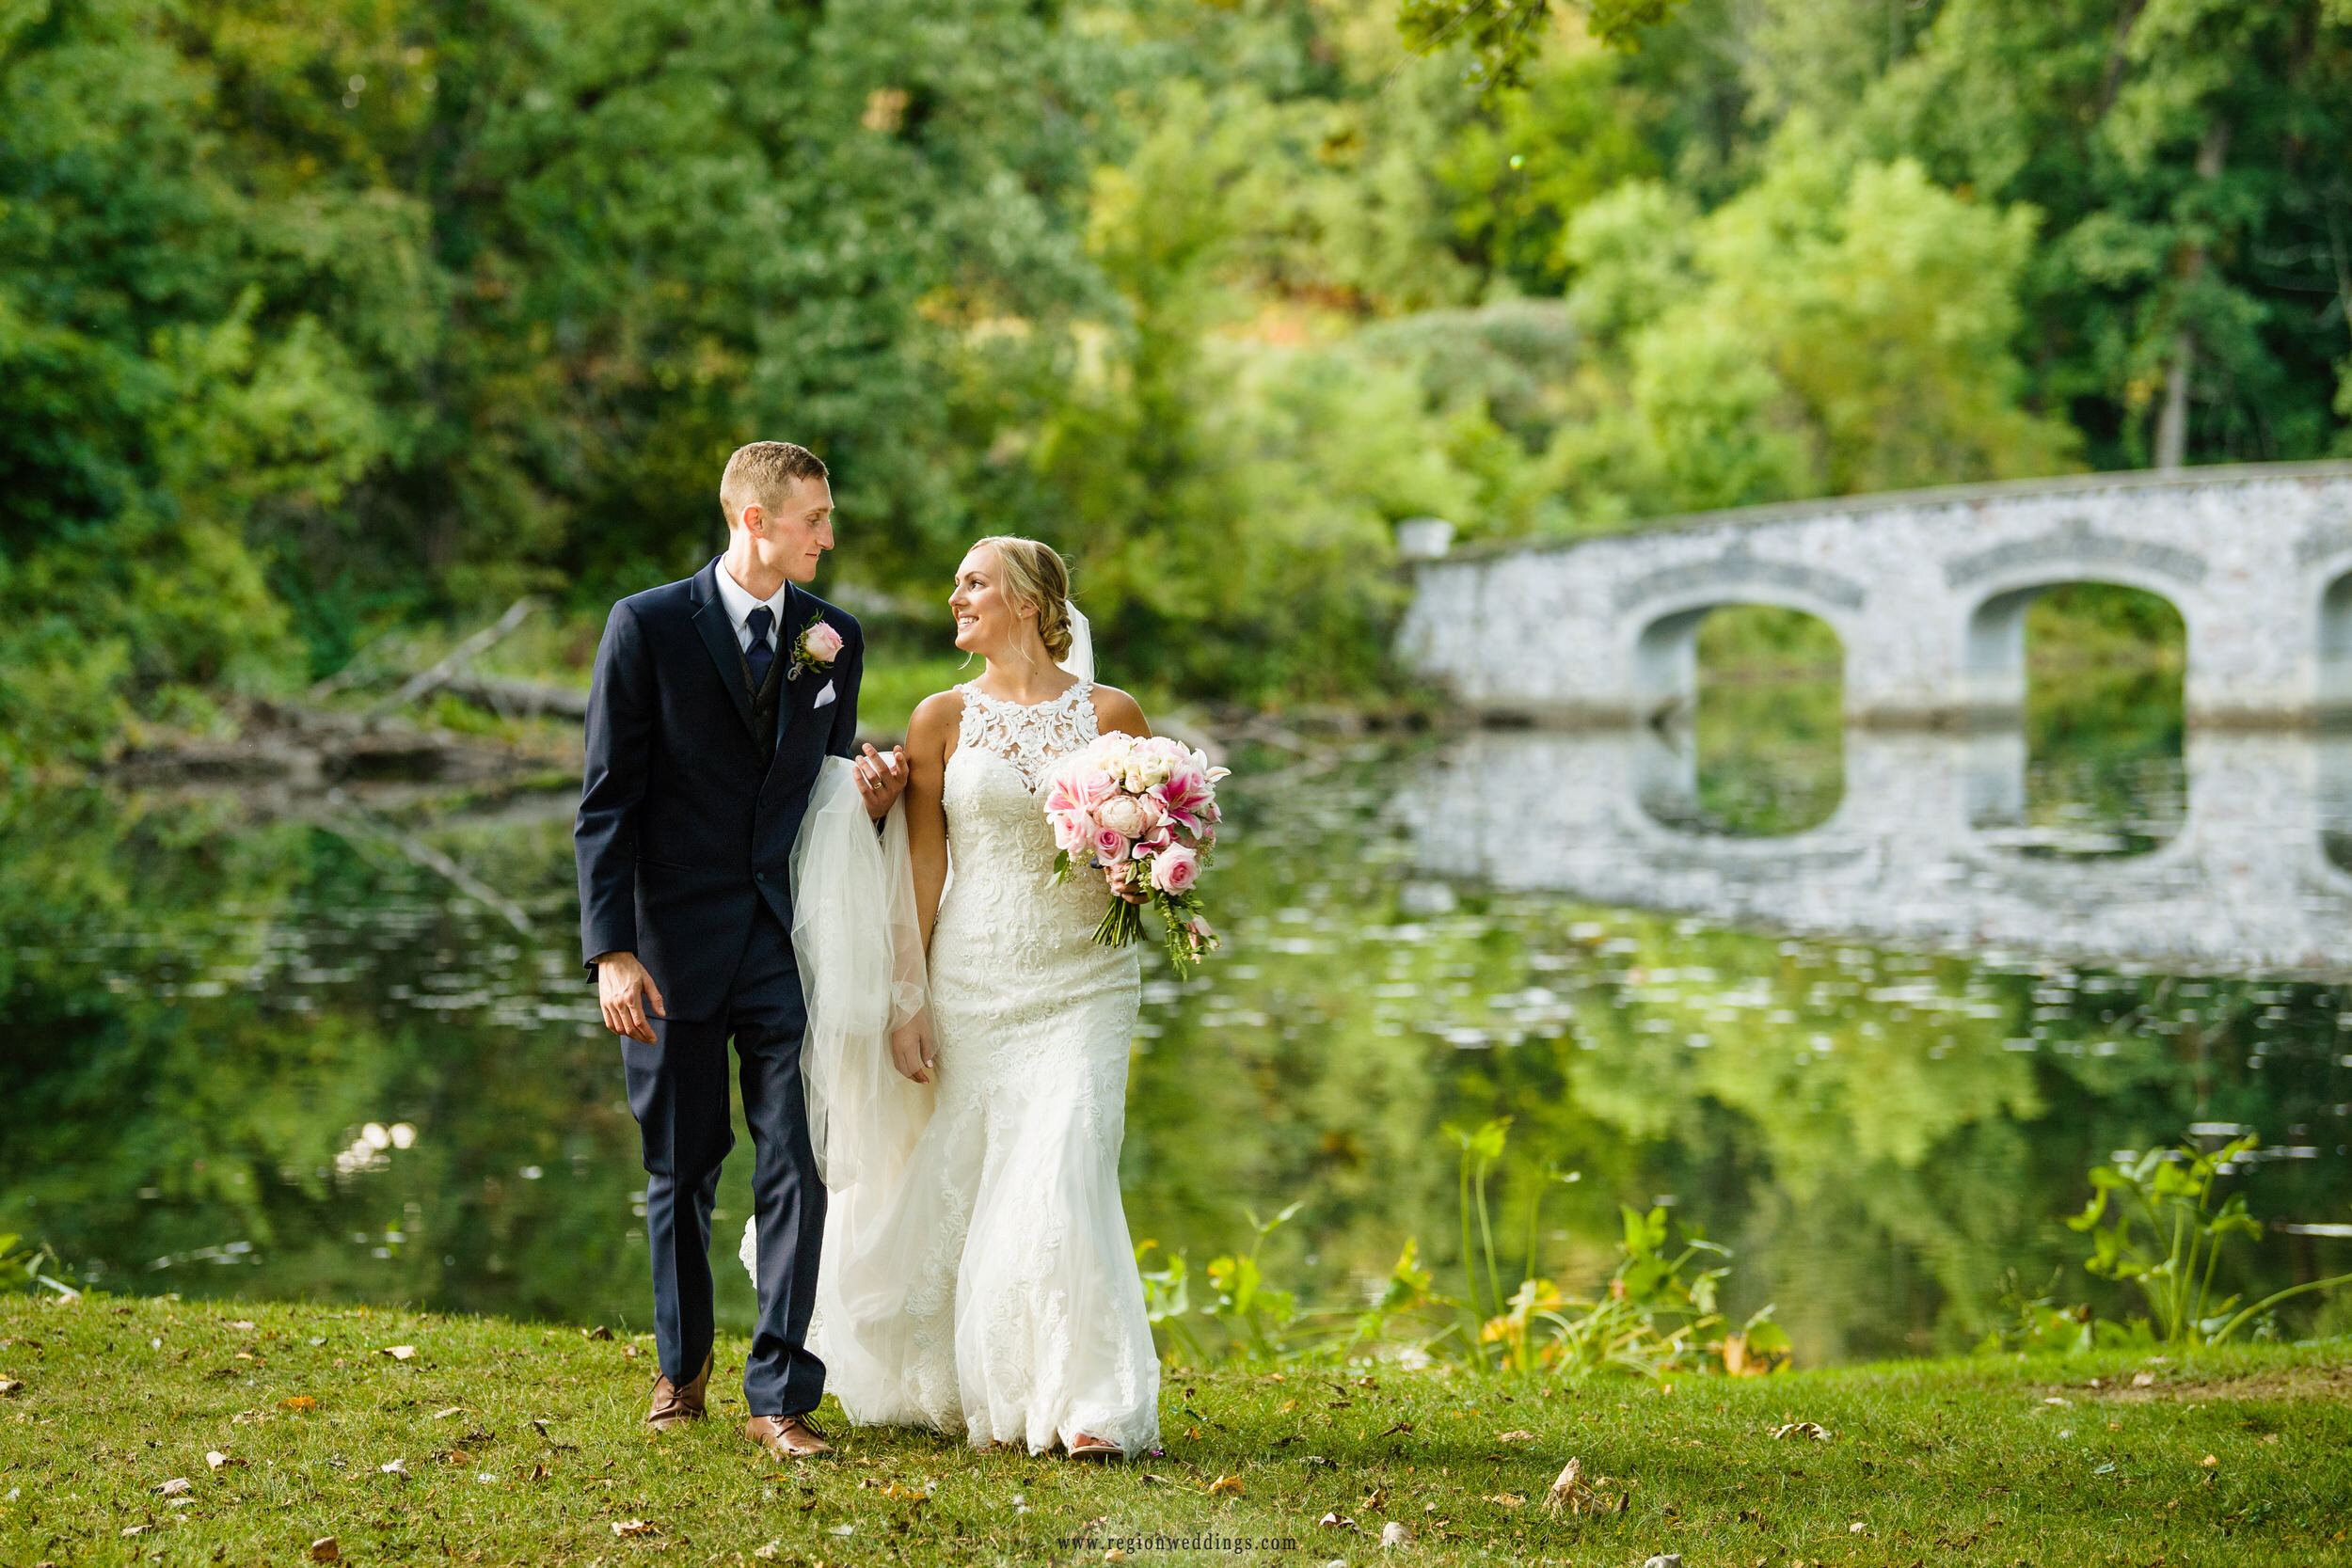 A bridge reflects across the water as the groom assist his bride across the field.